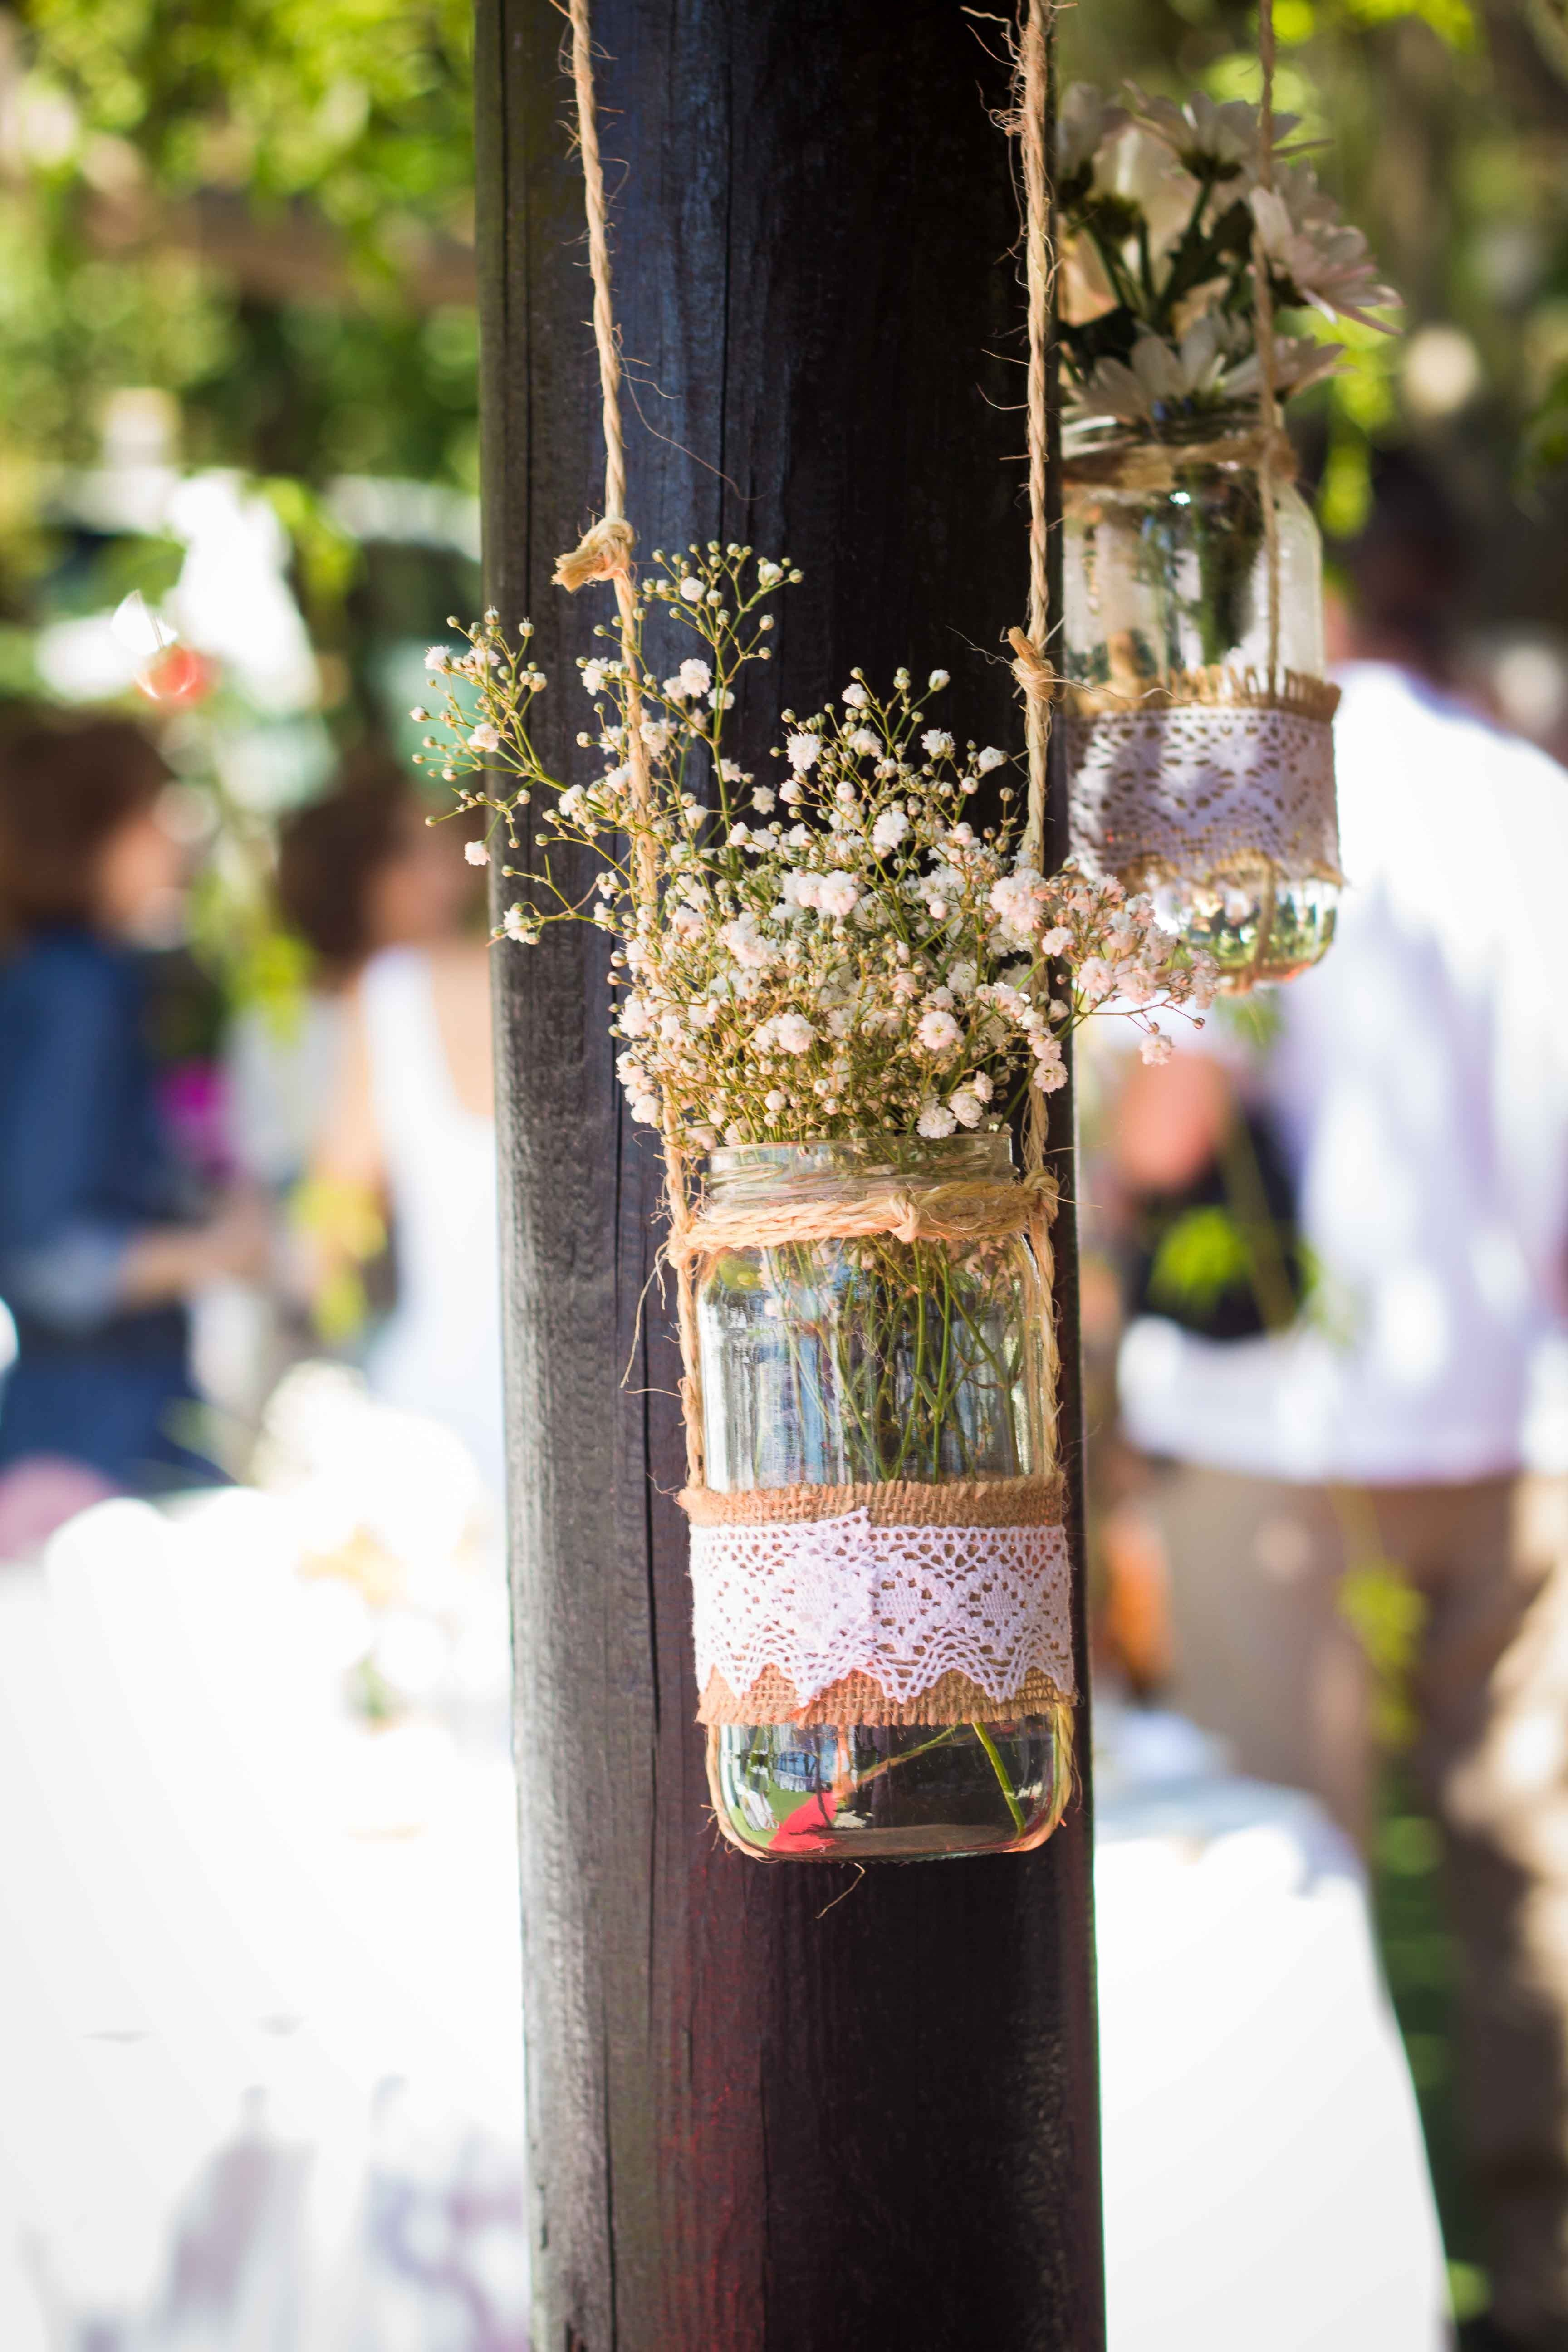 Glass hanging jars with white flowers